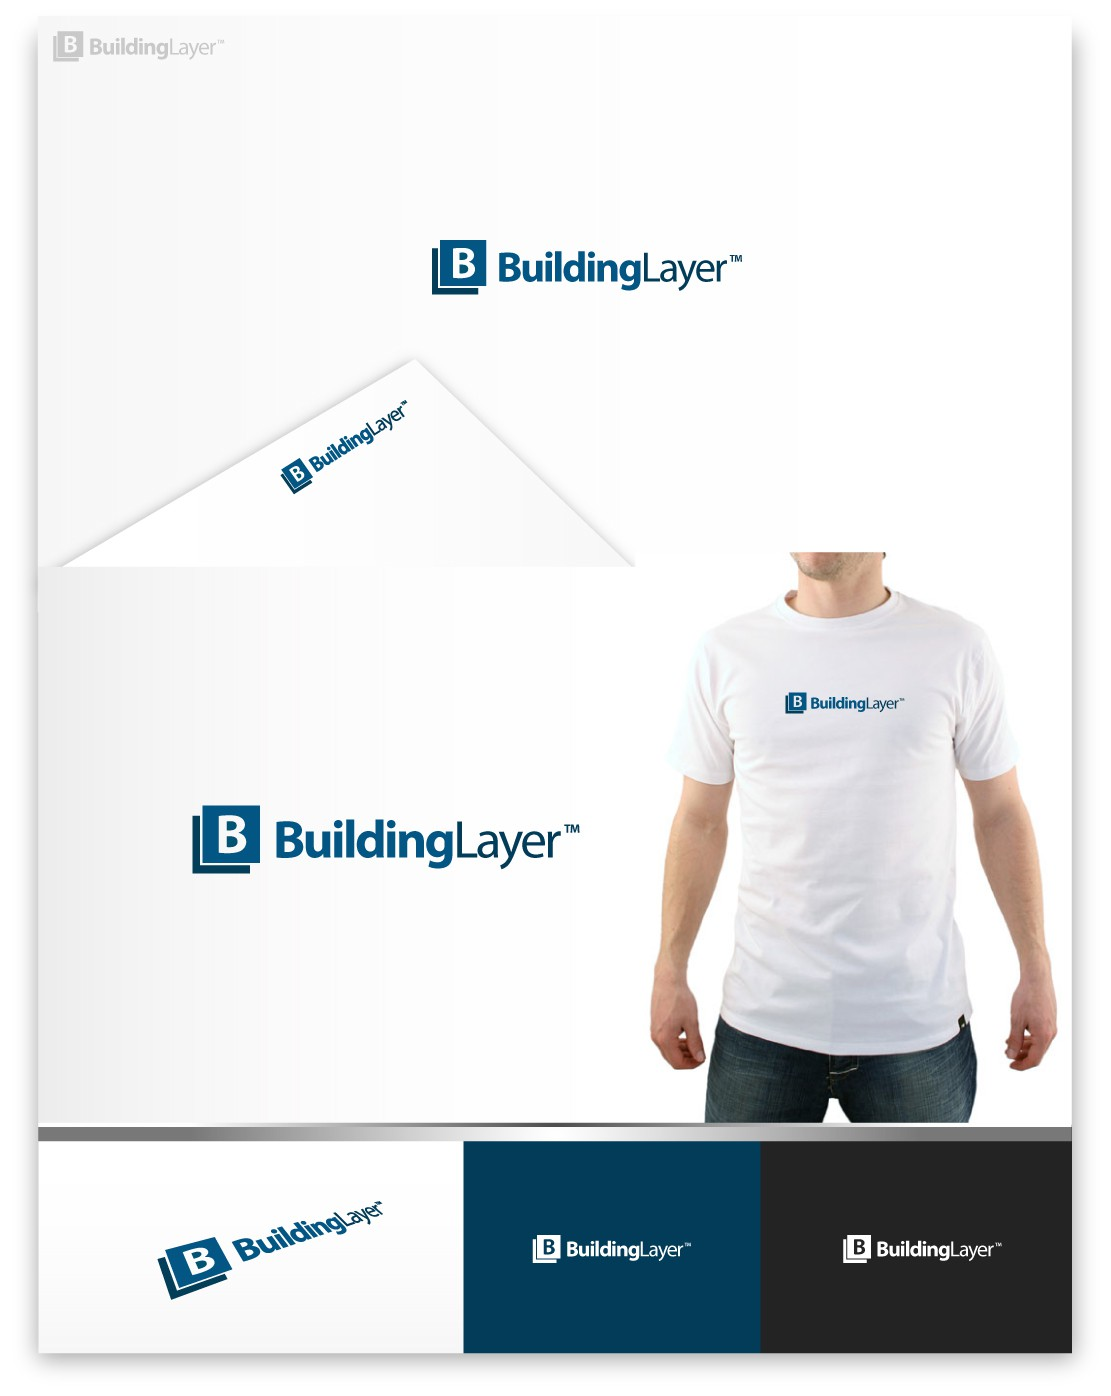 New logo wanted for BuildingLayer